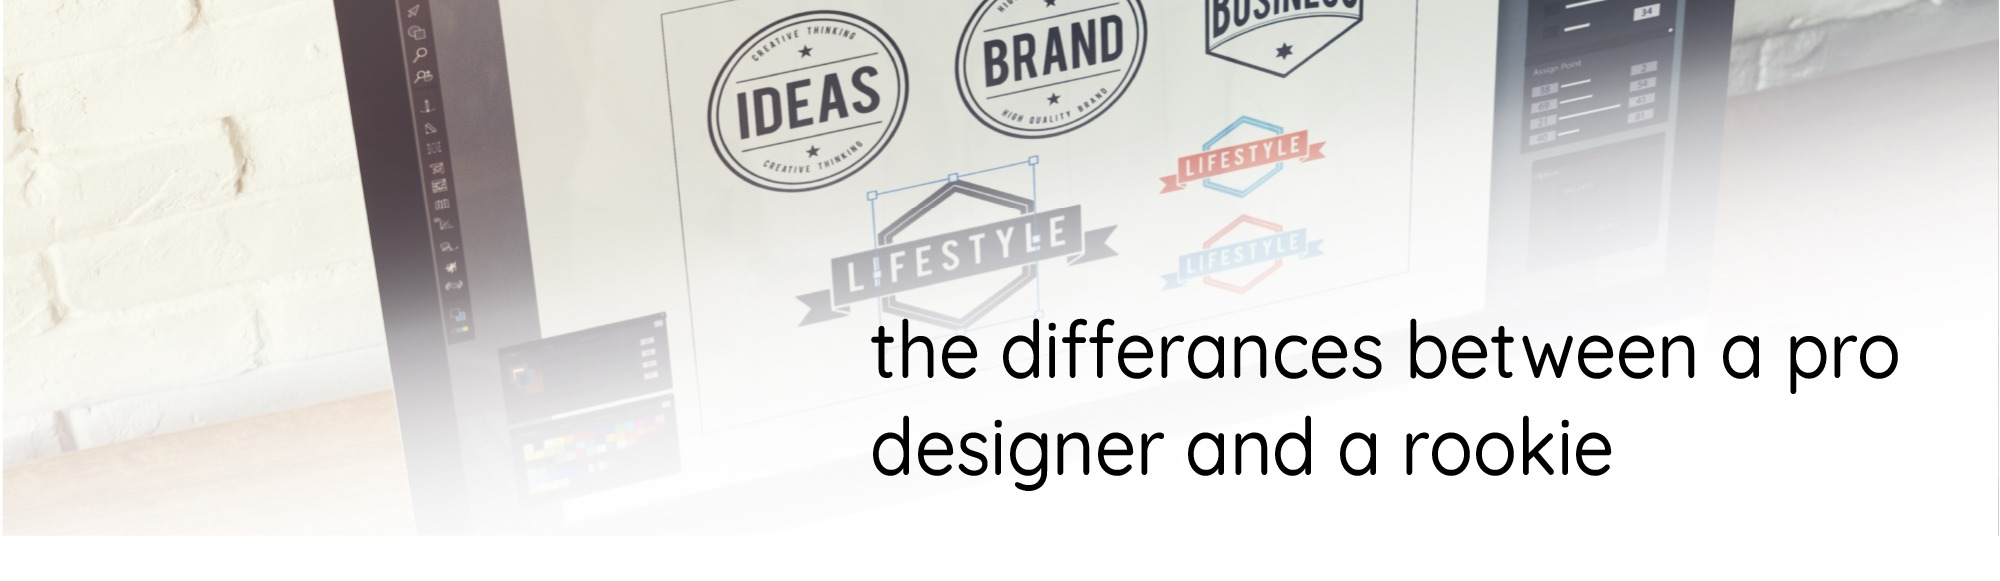 The Differences between a Pro Designer and a Rookie